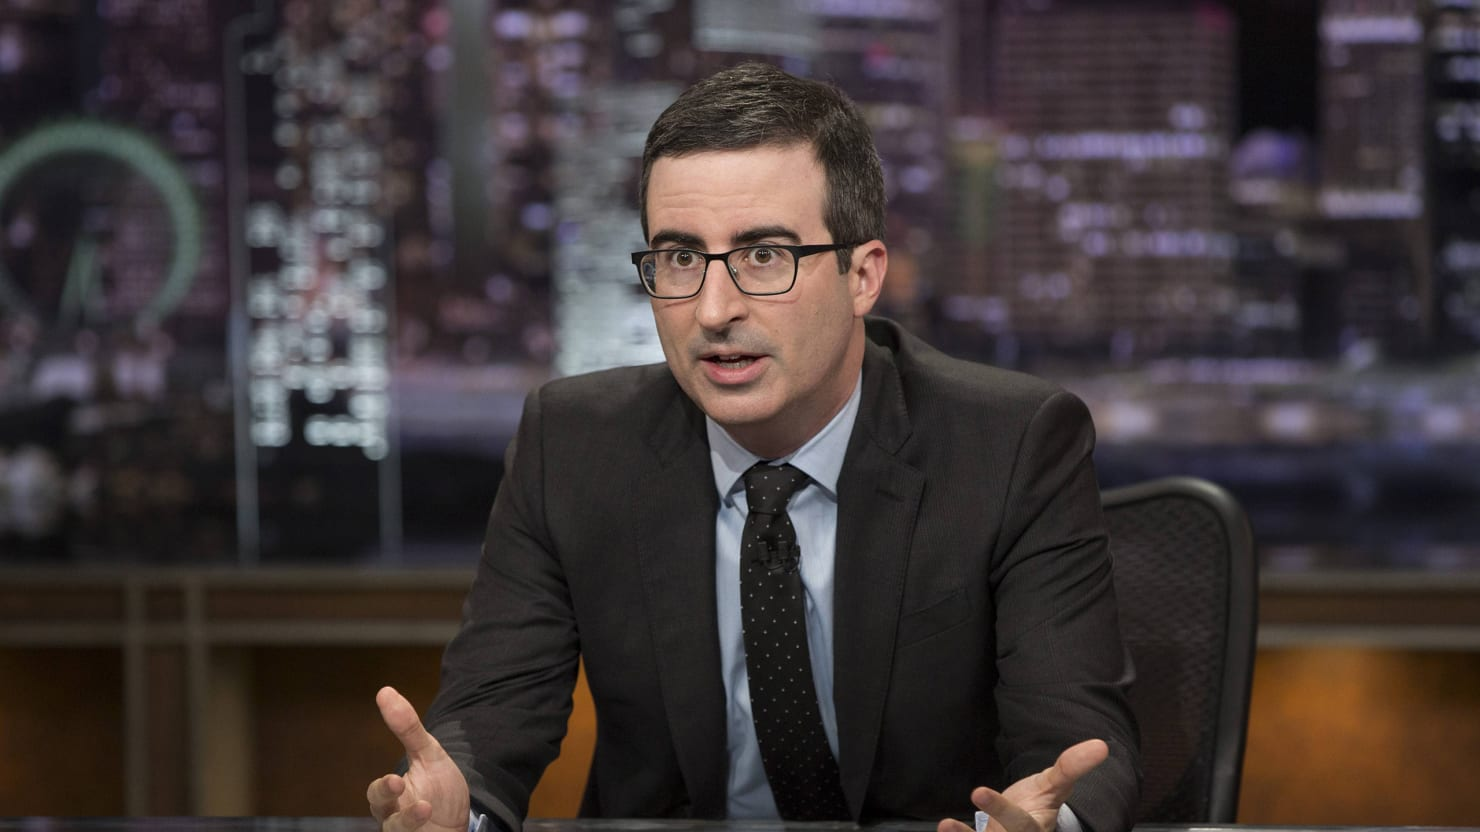 John Oliver Rips GOP's Oregon Shooting Reaction: 'Worst Time to Talk About Mental Health'